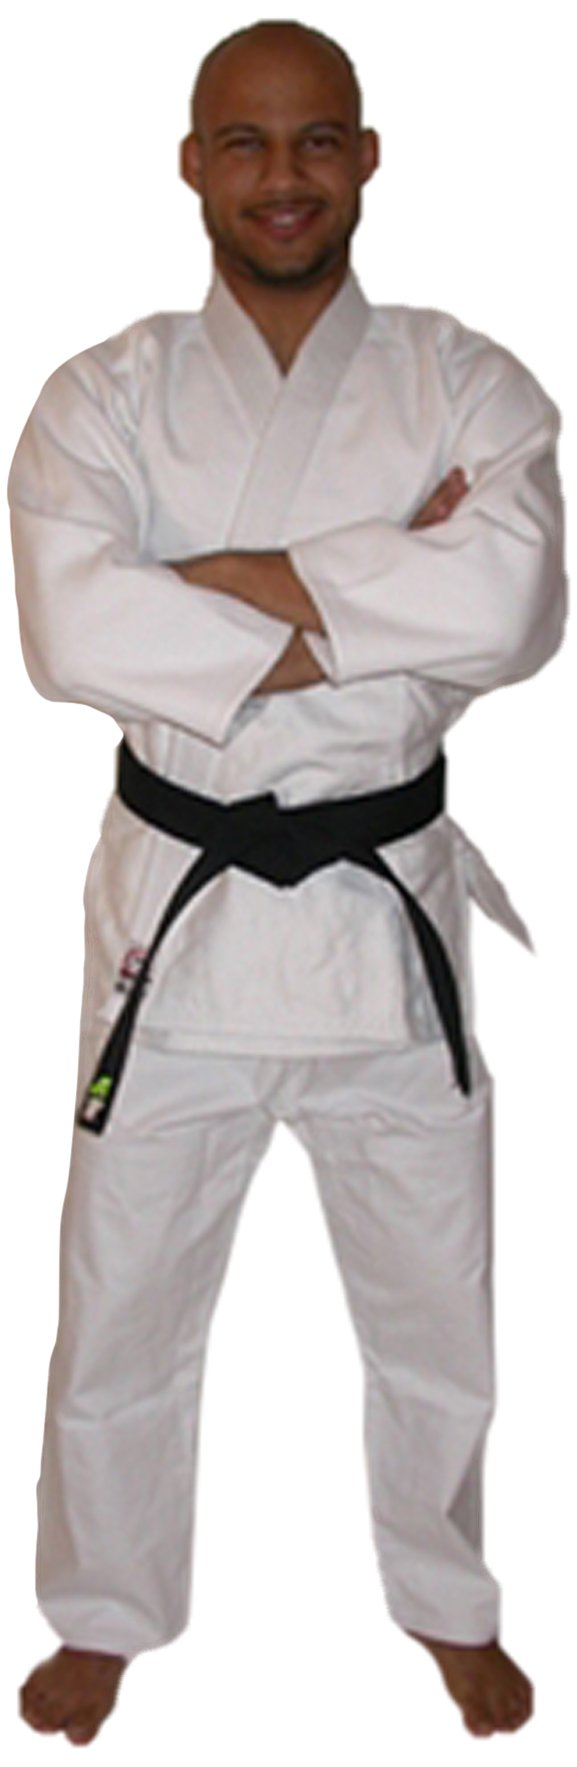 Fuji Advanced Brushed karate Uniform, White, 7 by Fuji